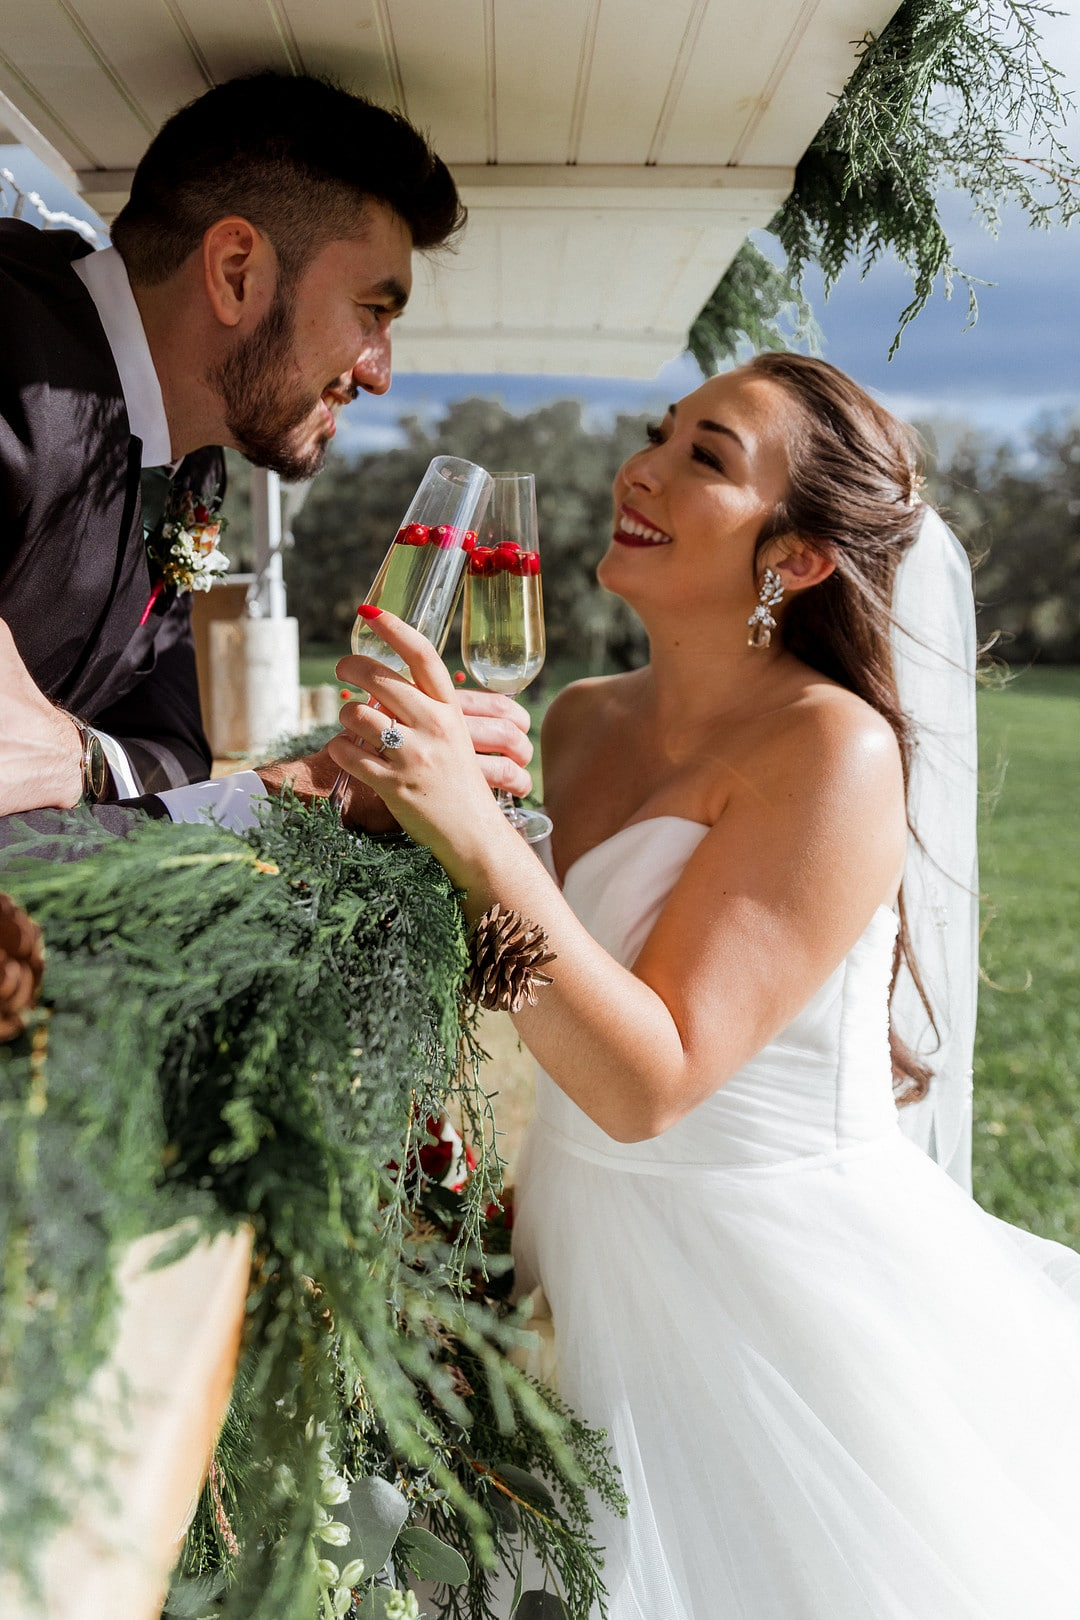 groom in mobile bar toasting champagne with cranberries in glass with his bride wearing a veil